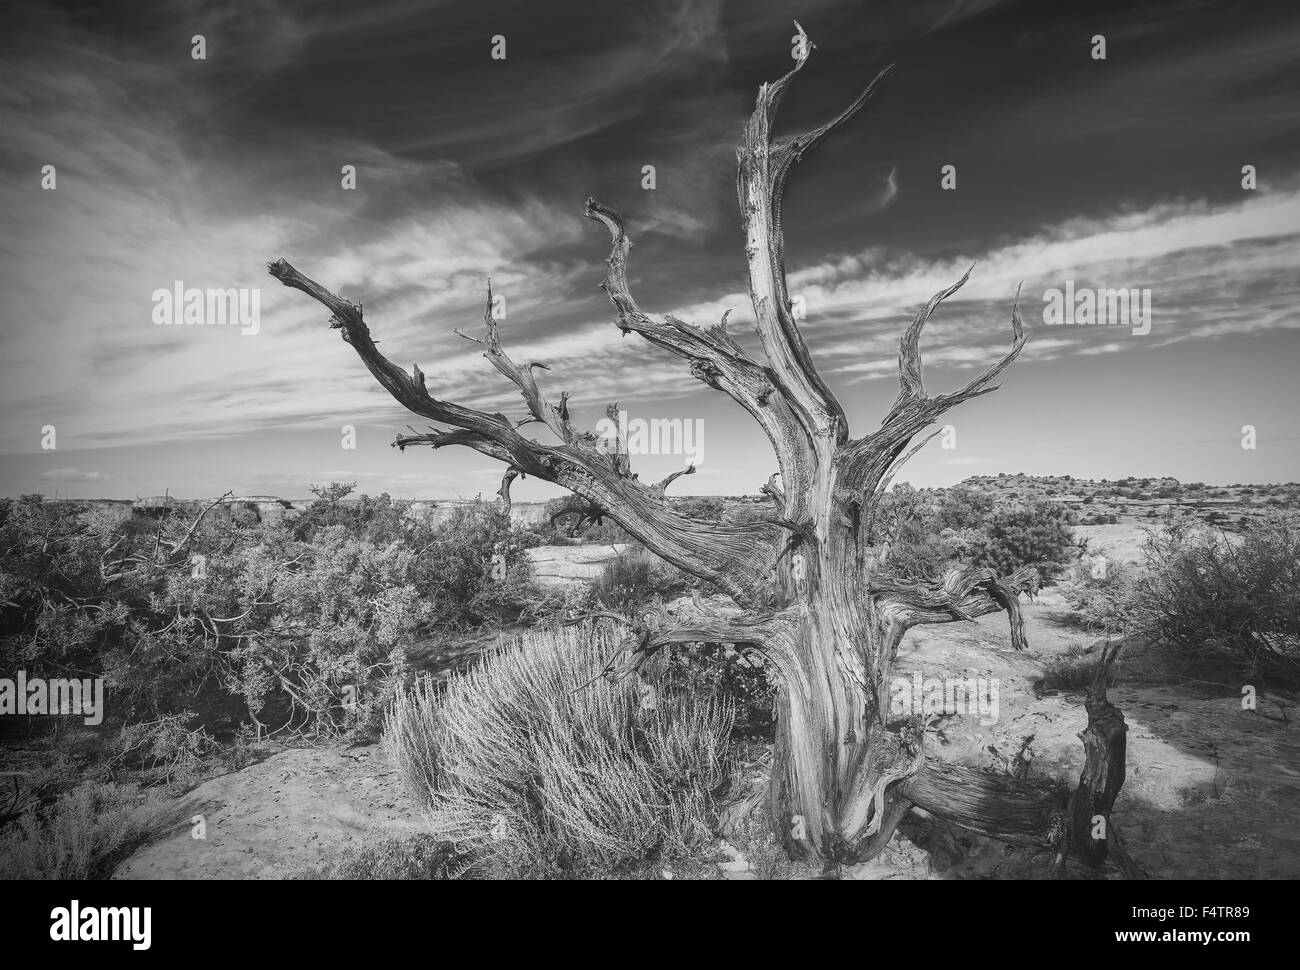 Black and white photo of lonely dead tree on desert. - Stock Image